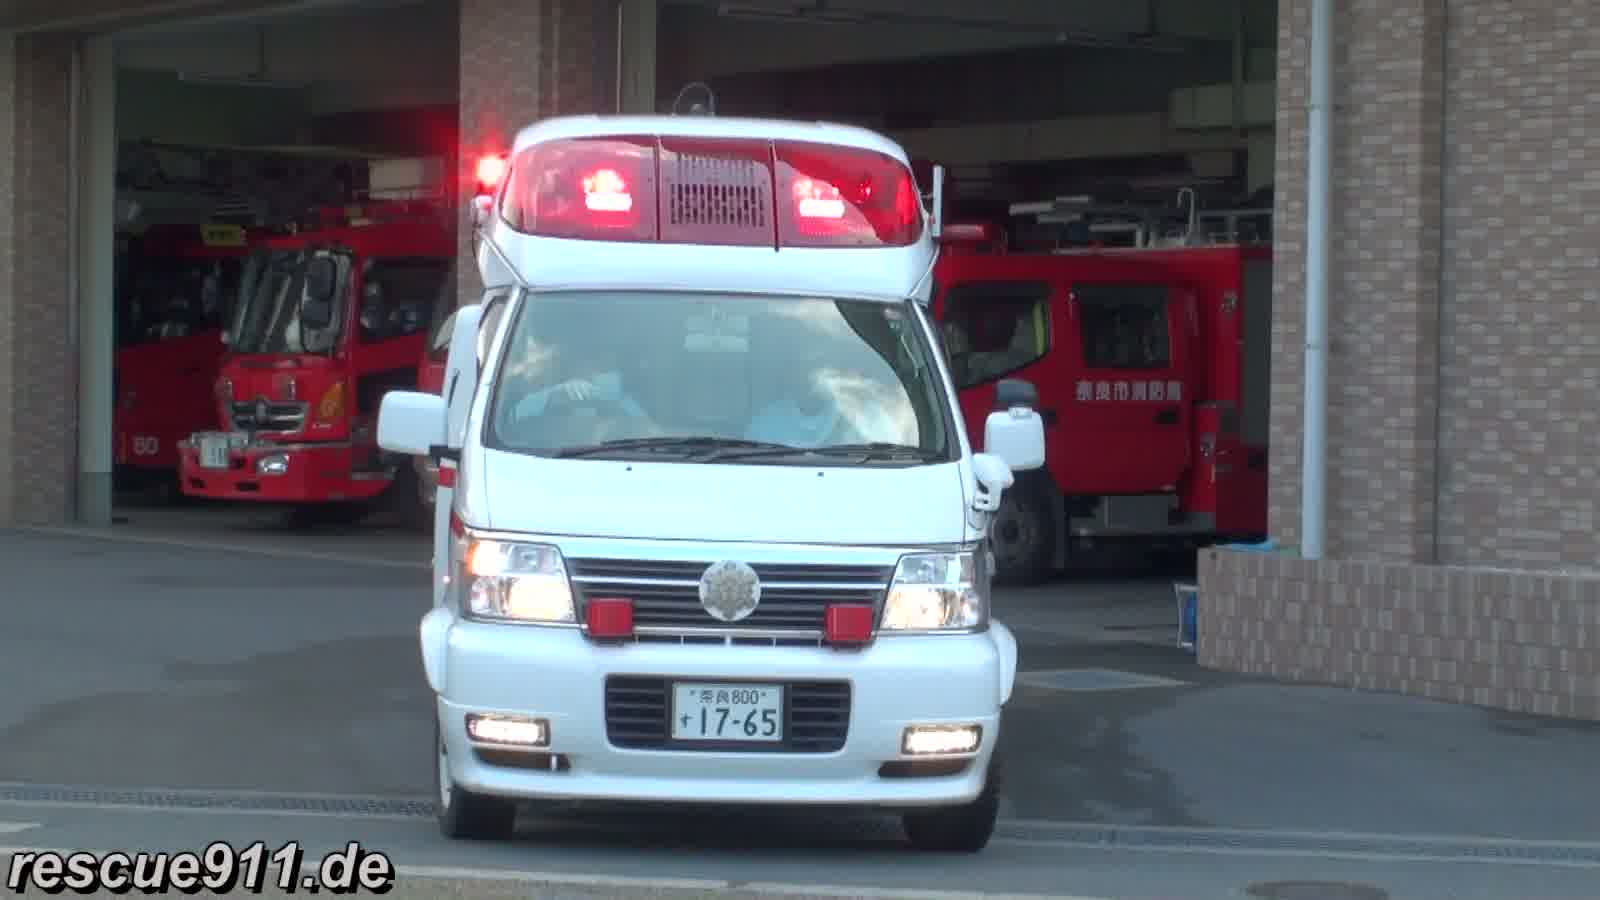 Ambulance Nara Fire Department (stream)